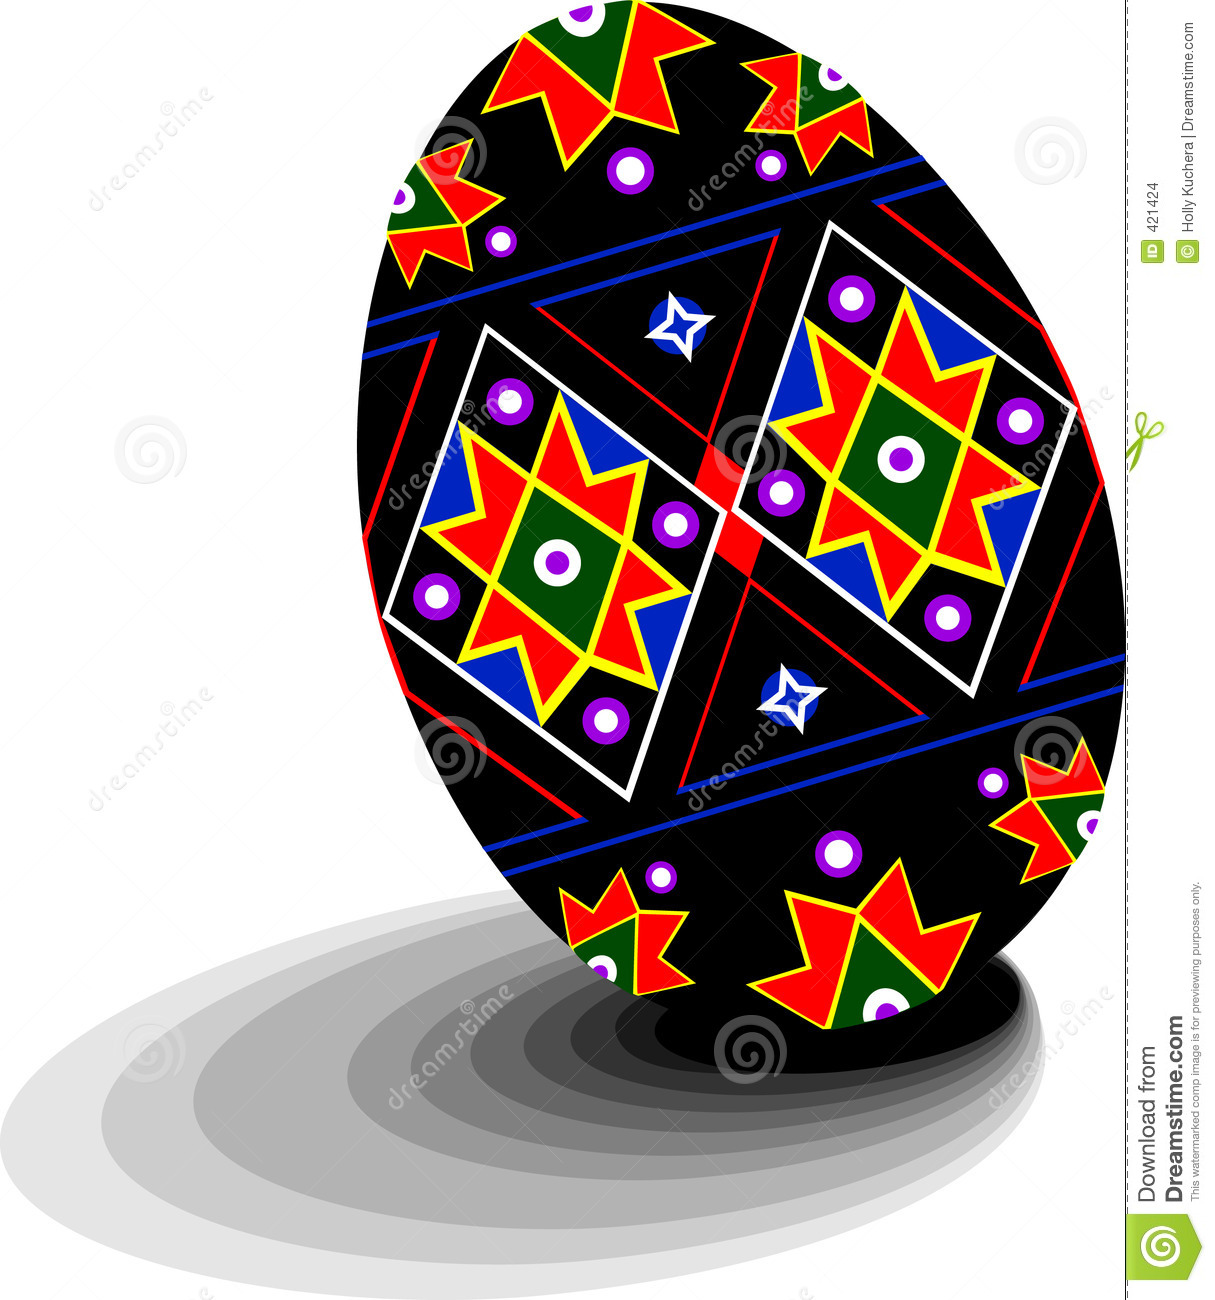 Ukranian easter egg clipart clipart black and white library Ukranian easter egg clipart - ClipartFest clipart black and white library